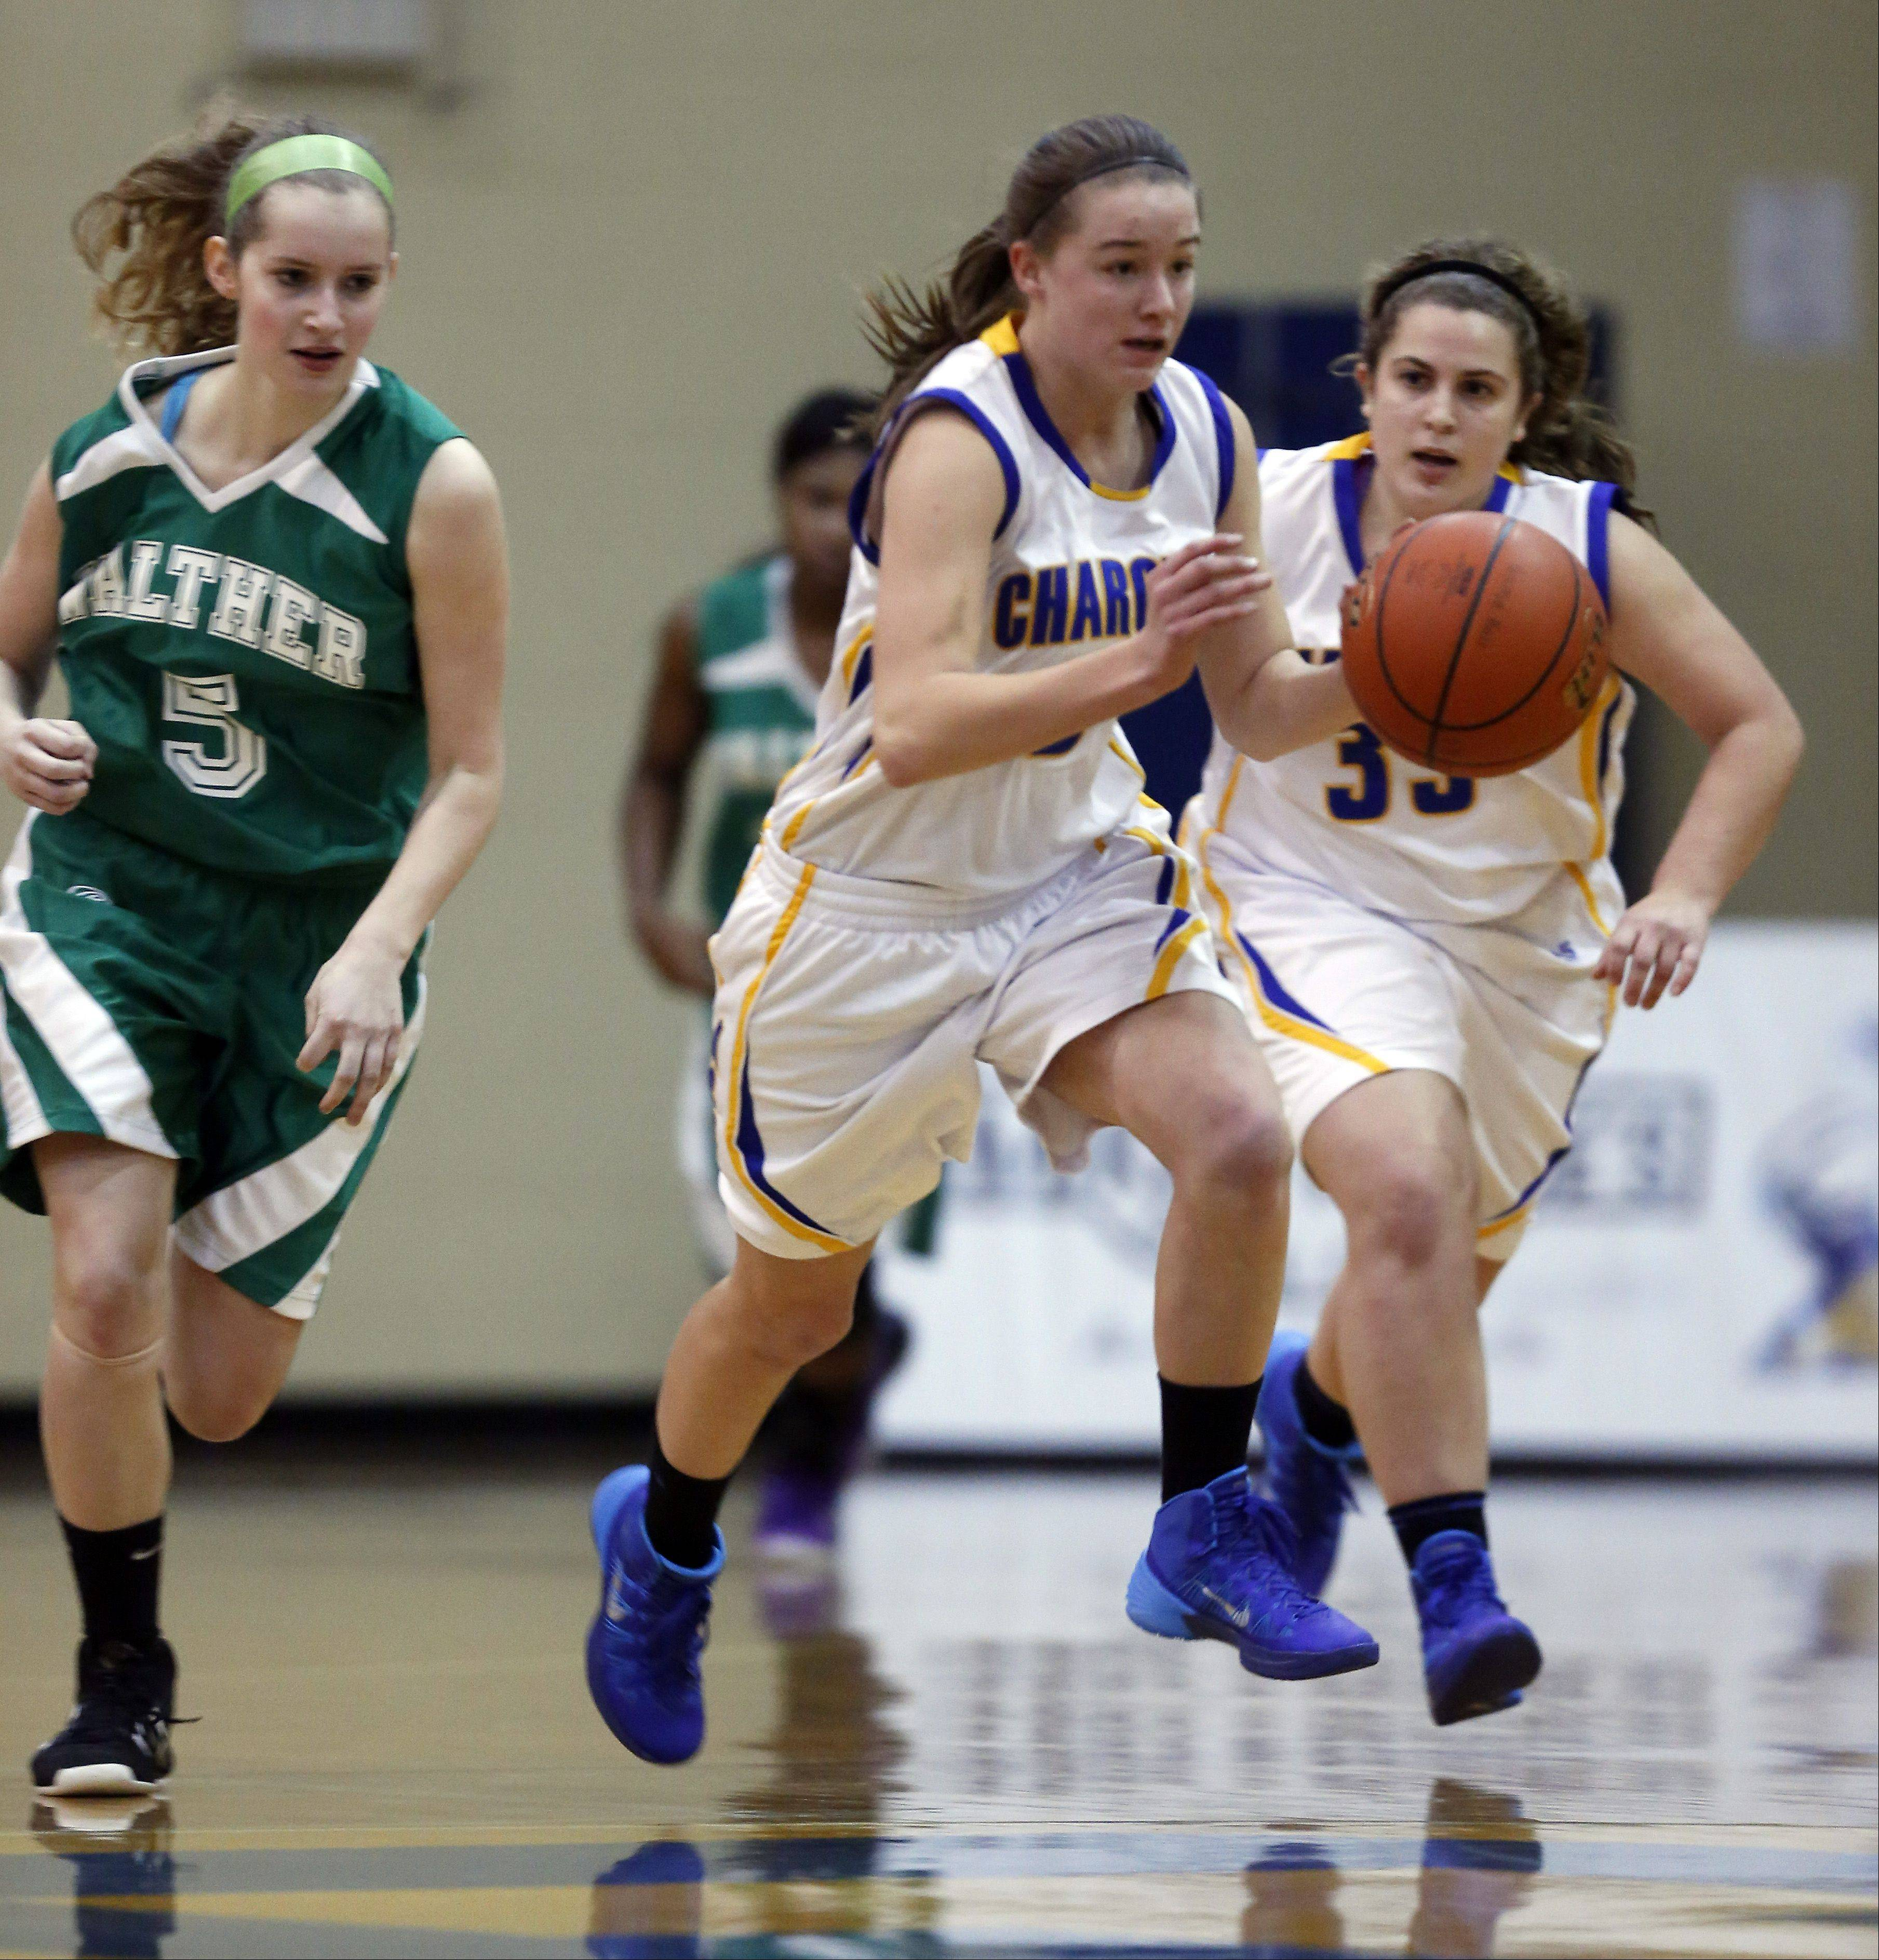 Images from the Walther Christian vs. Aurora Central Catholic girls basketball game Friday, January 3, 2014.